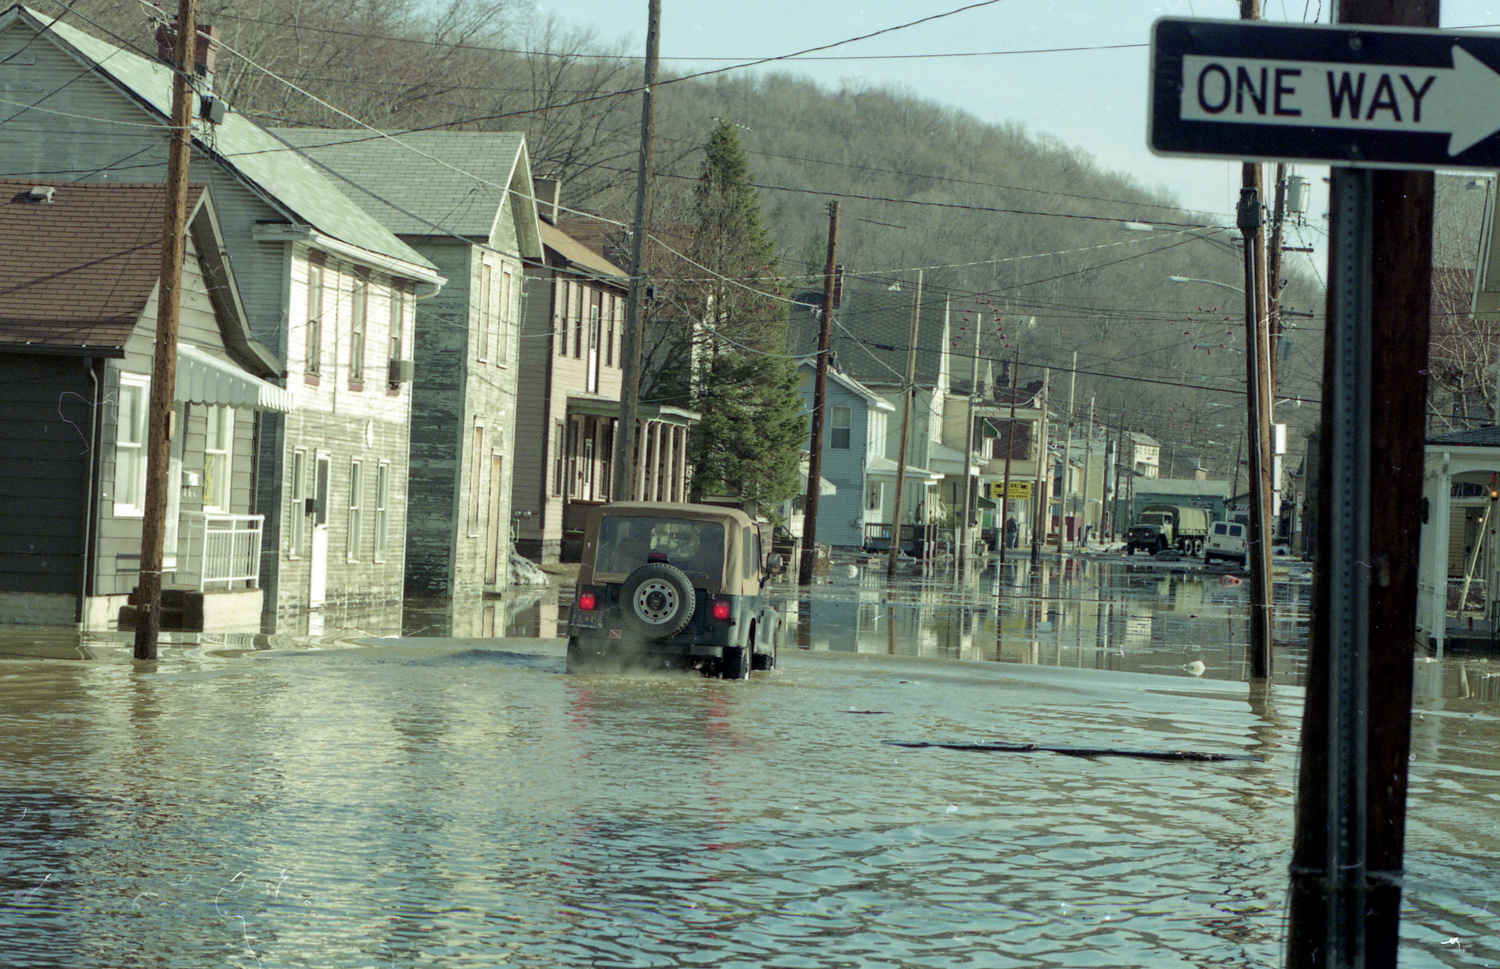 Waters flooded several streets in the Pittsburgh area.